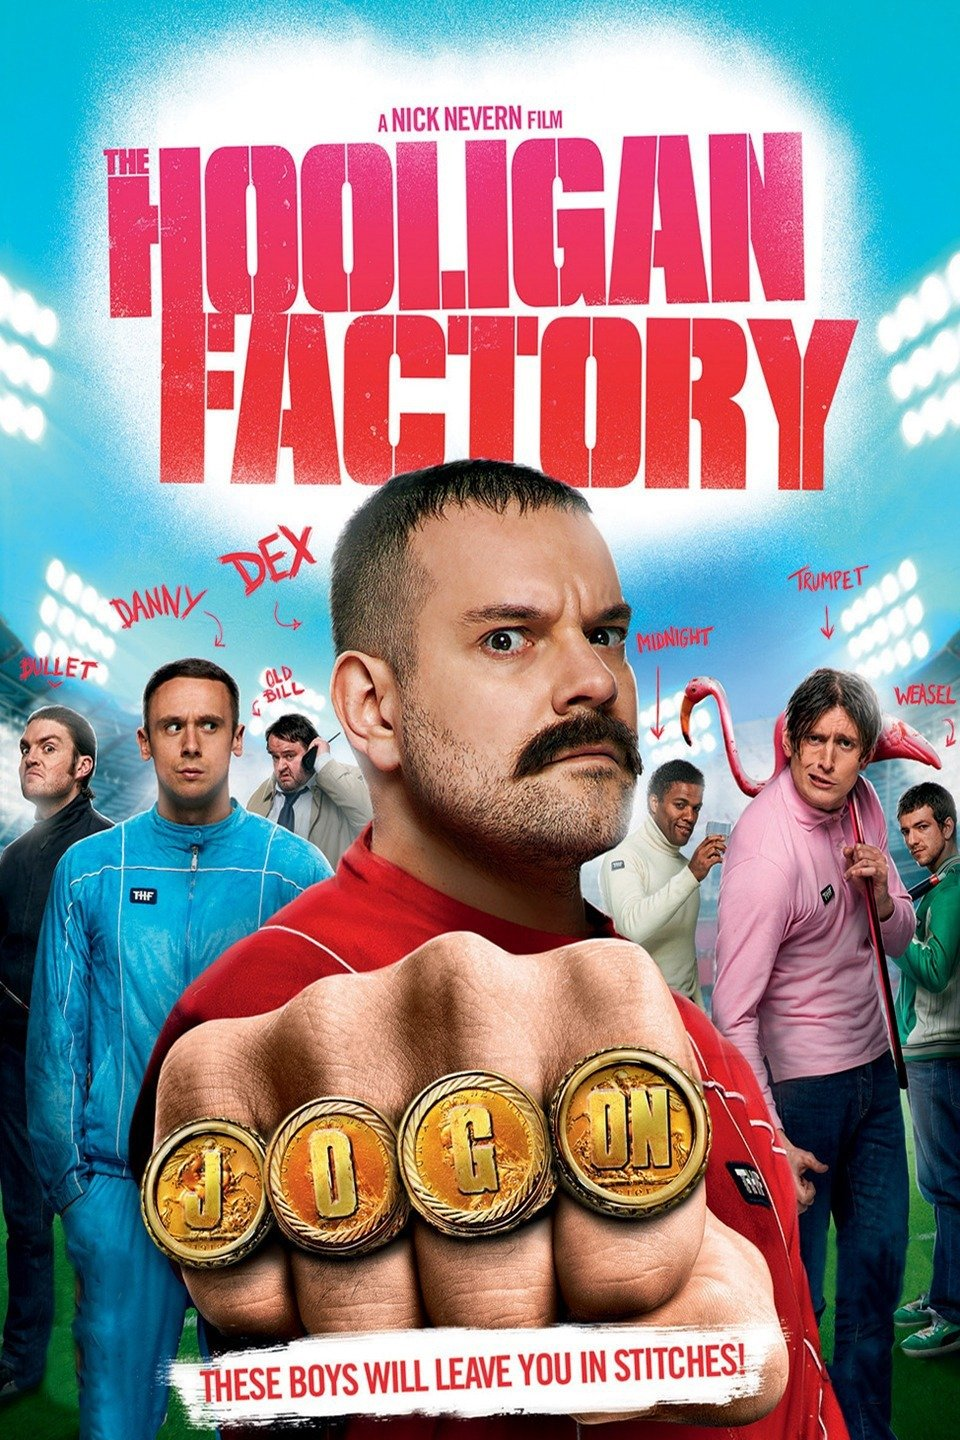 The Hooligan Factory wwwgstaticcomtvthumbmovieposters10798615p10